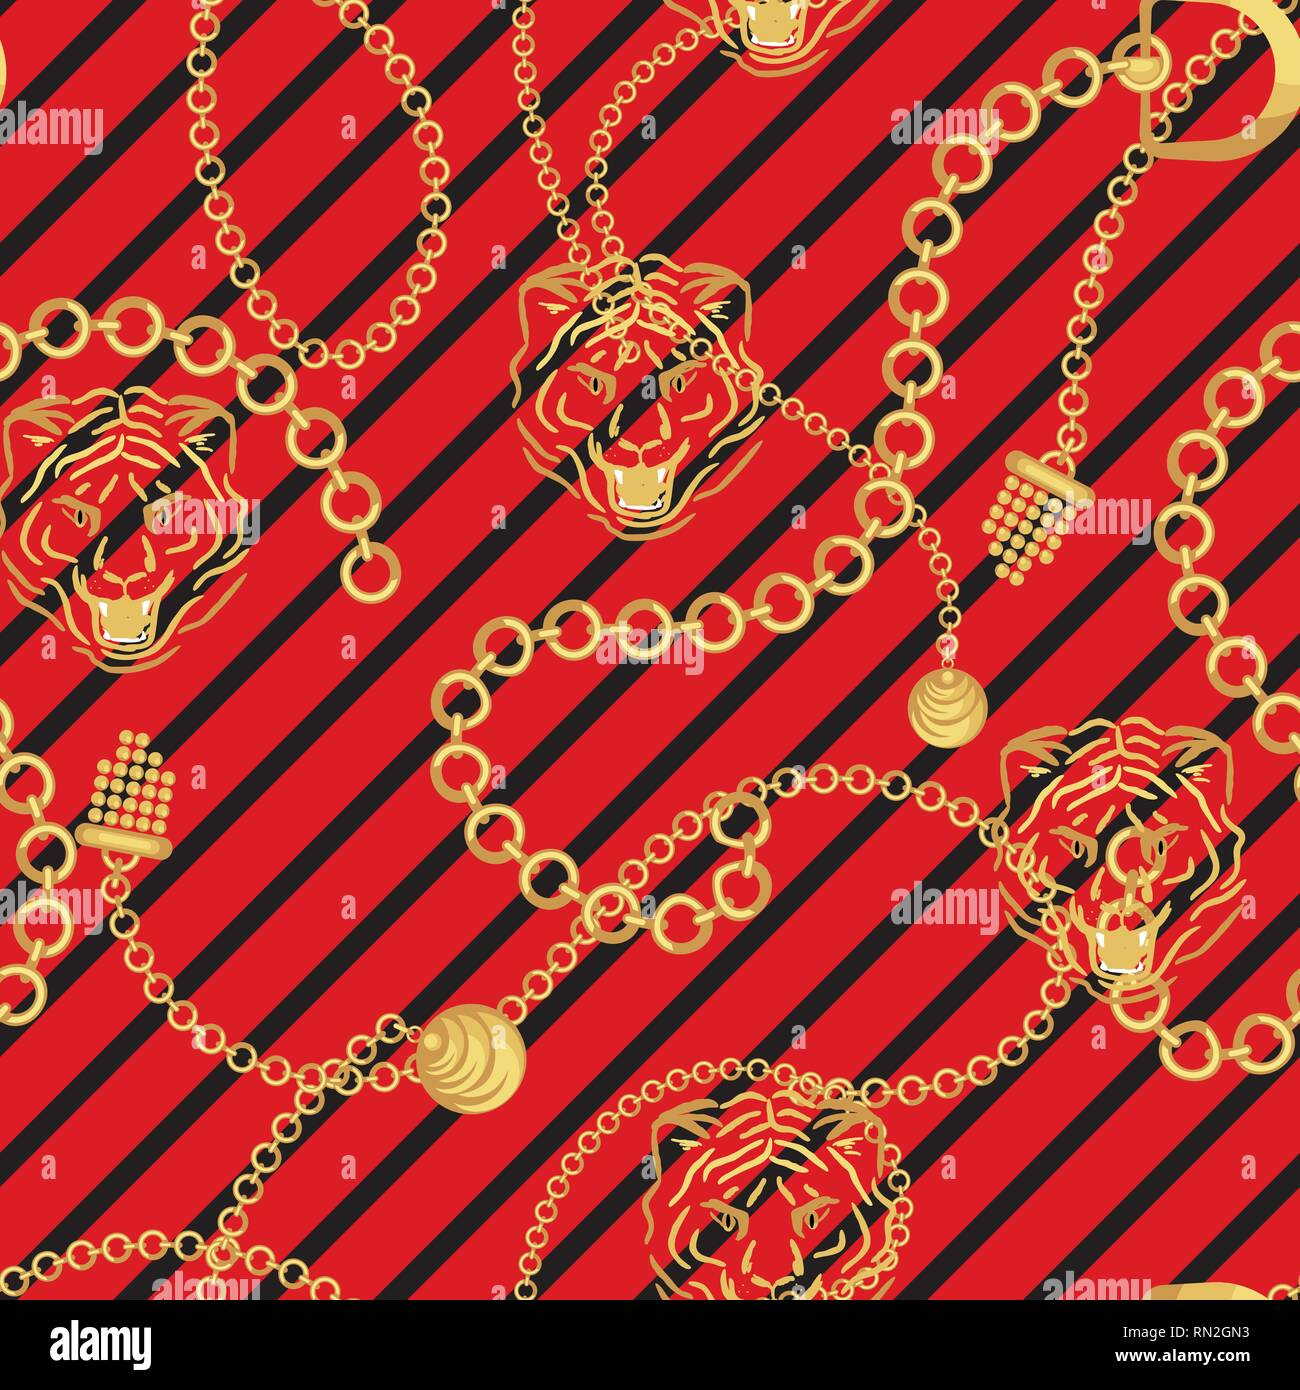 Tiger head and gold chains striped red pattern fashion wild vector design. Jewelry pendants accessories seamless print with animal skin texture for sc - Stock Vector